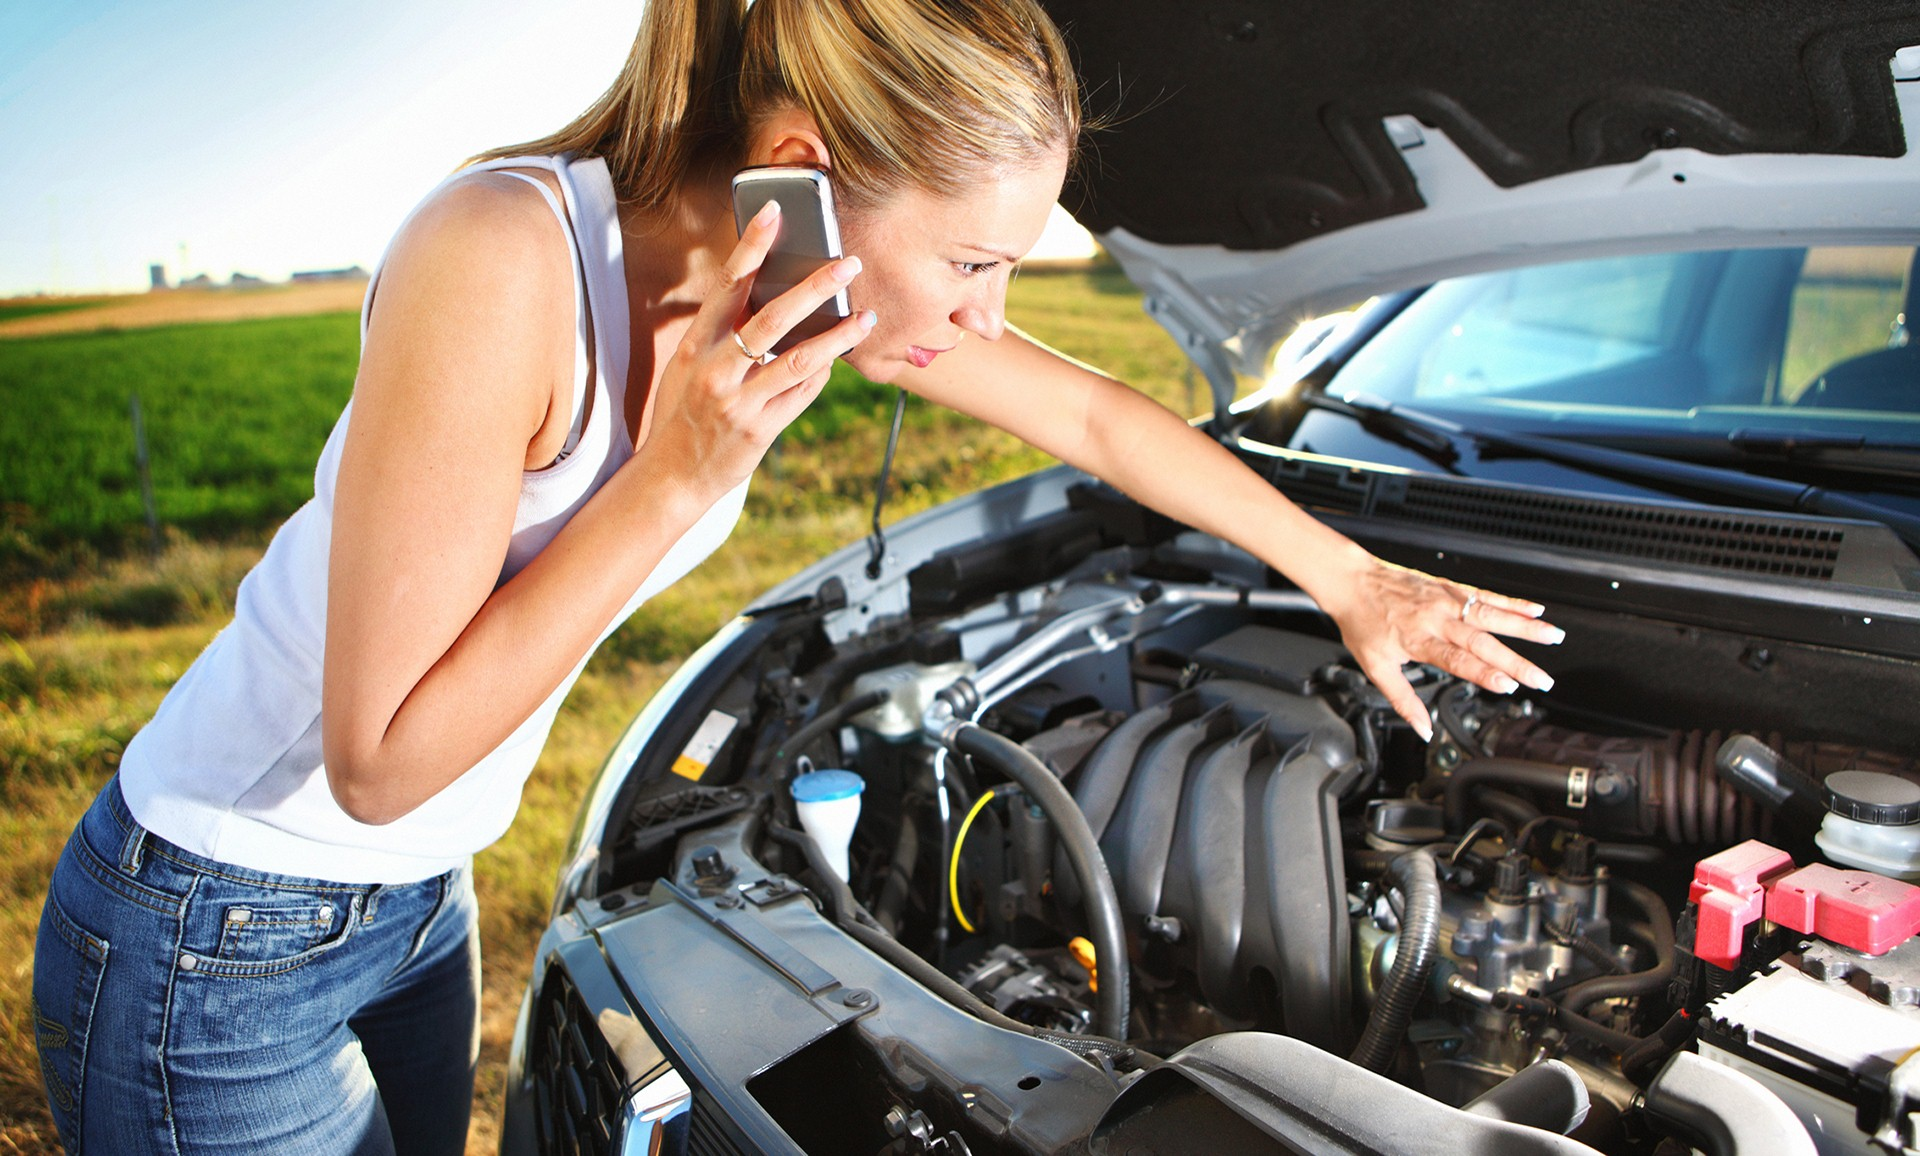 Does your vehicle need repair